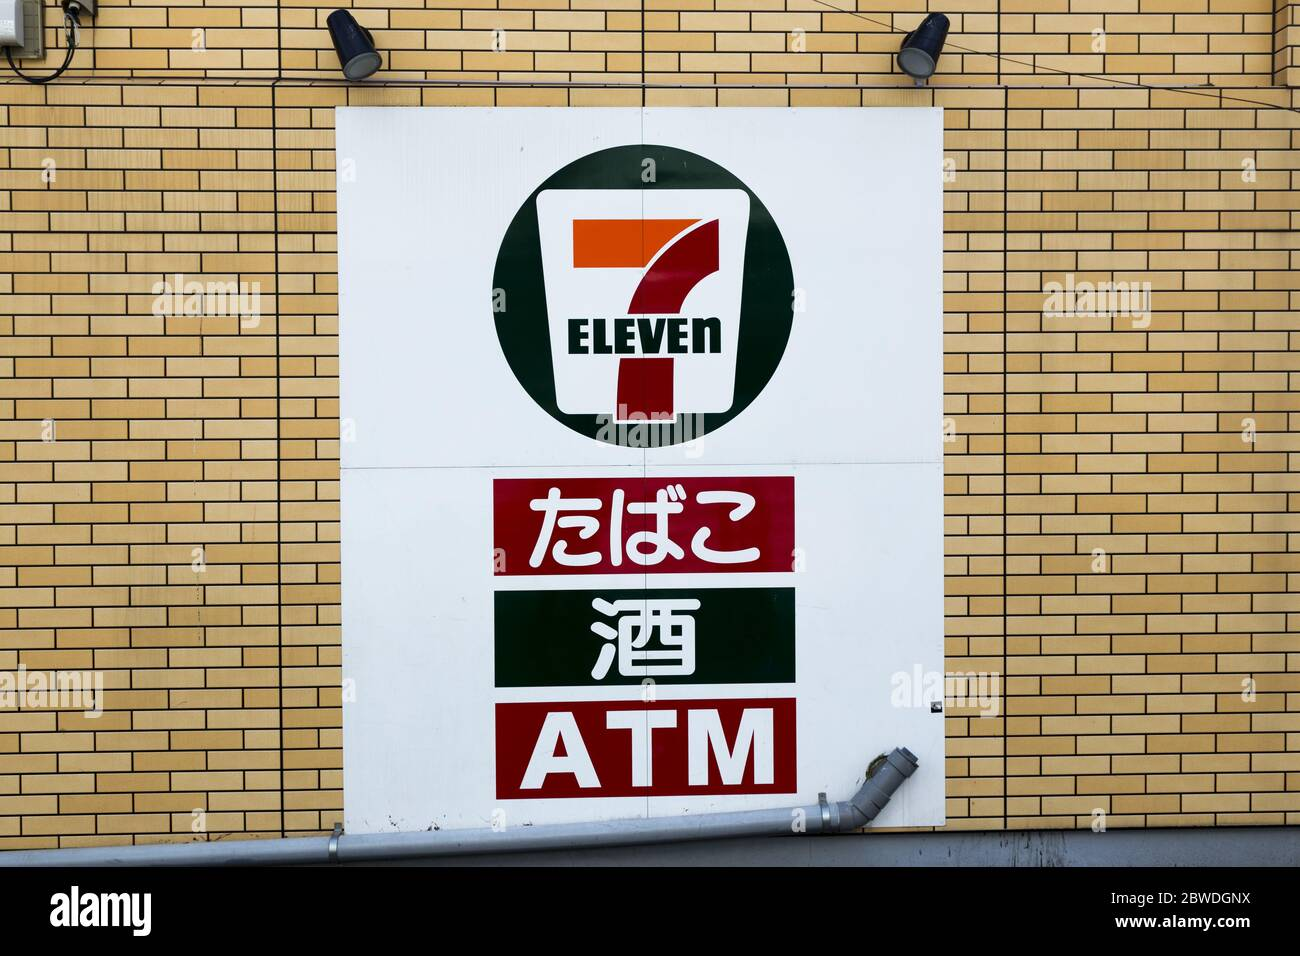 7-eleven-convenience-store-sign-against-